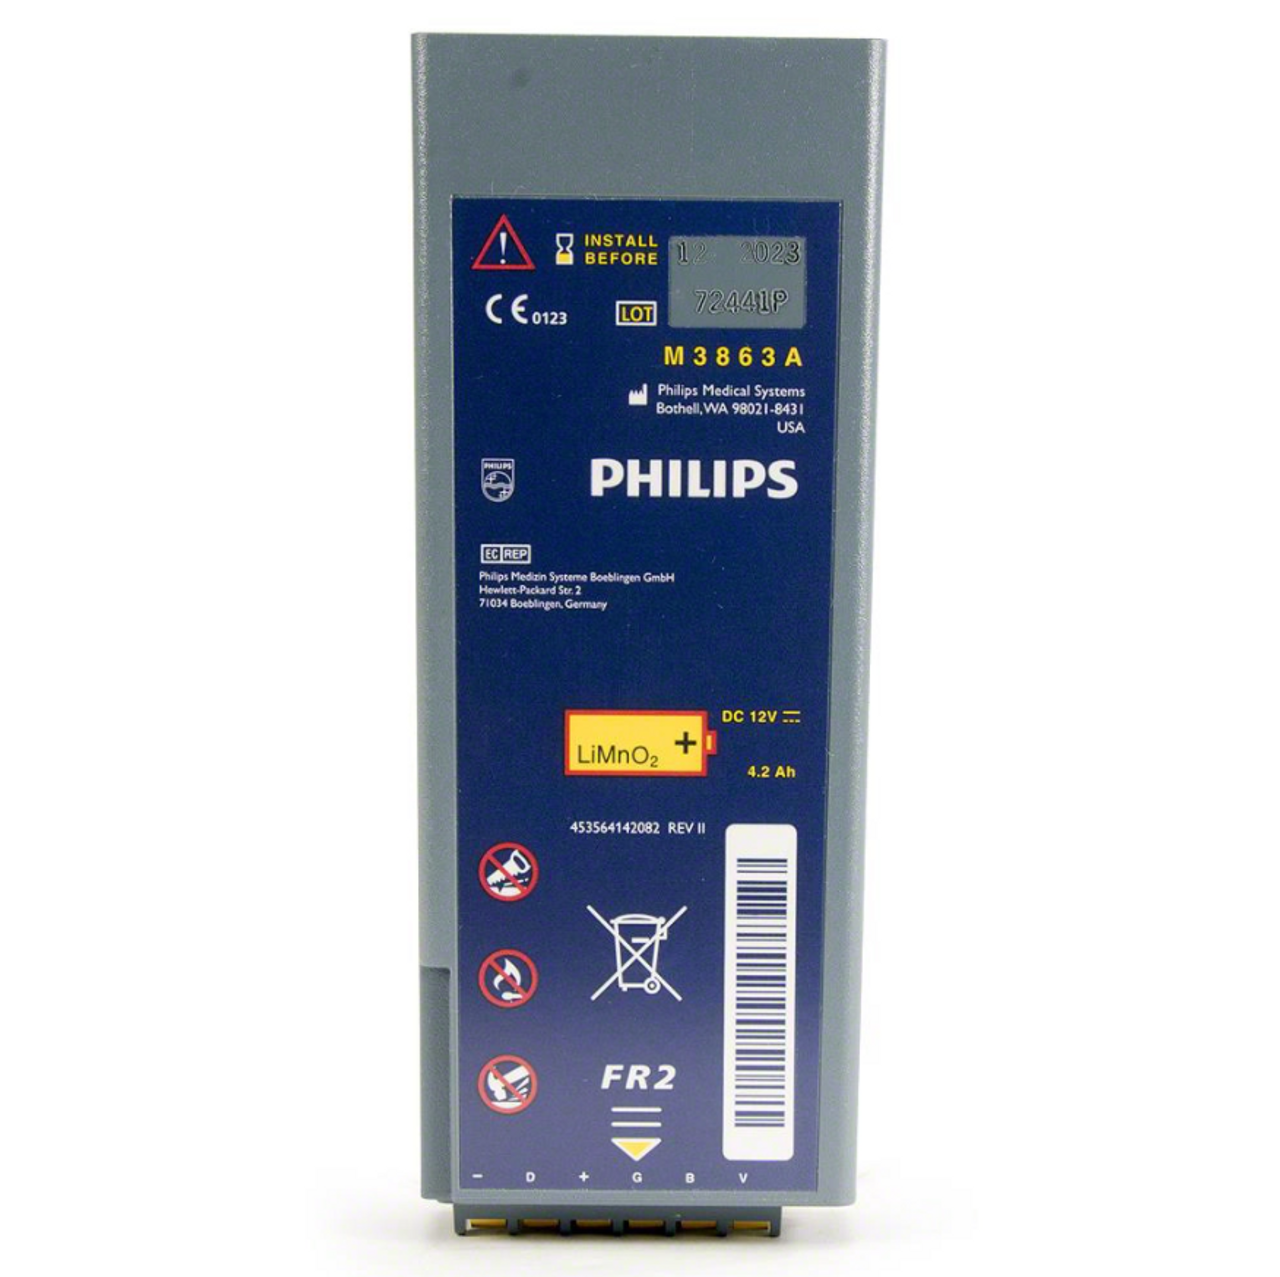 Philips Battery - FR2 Series, Long-Life LiMN02 (M3863A)